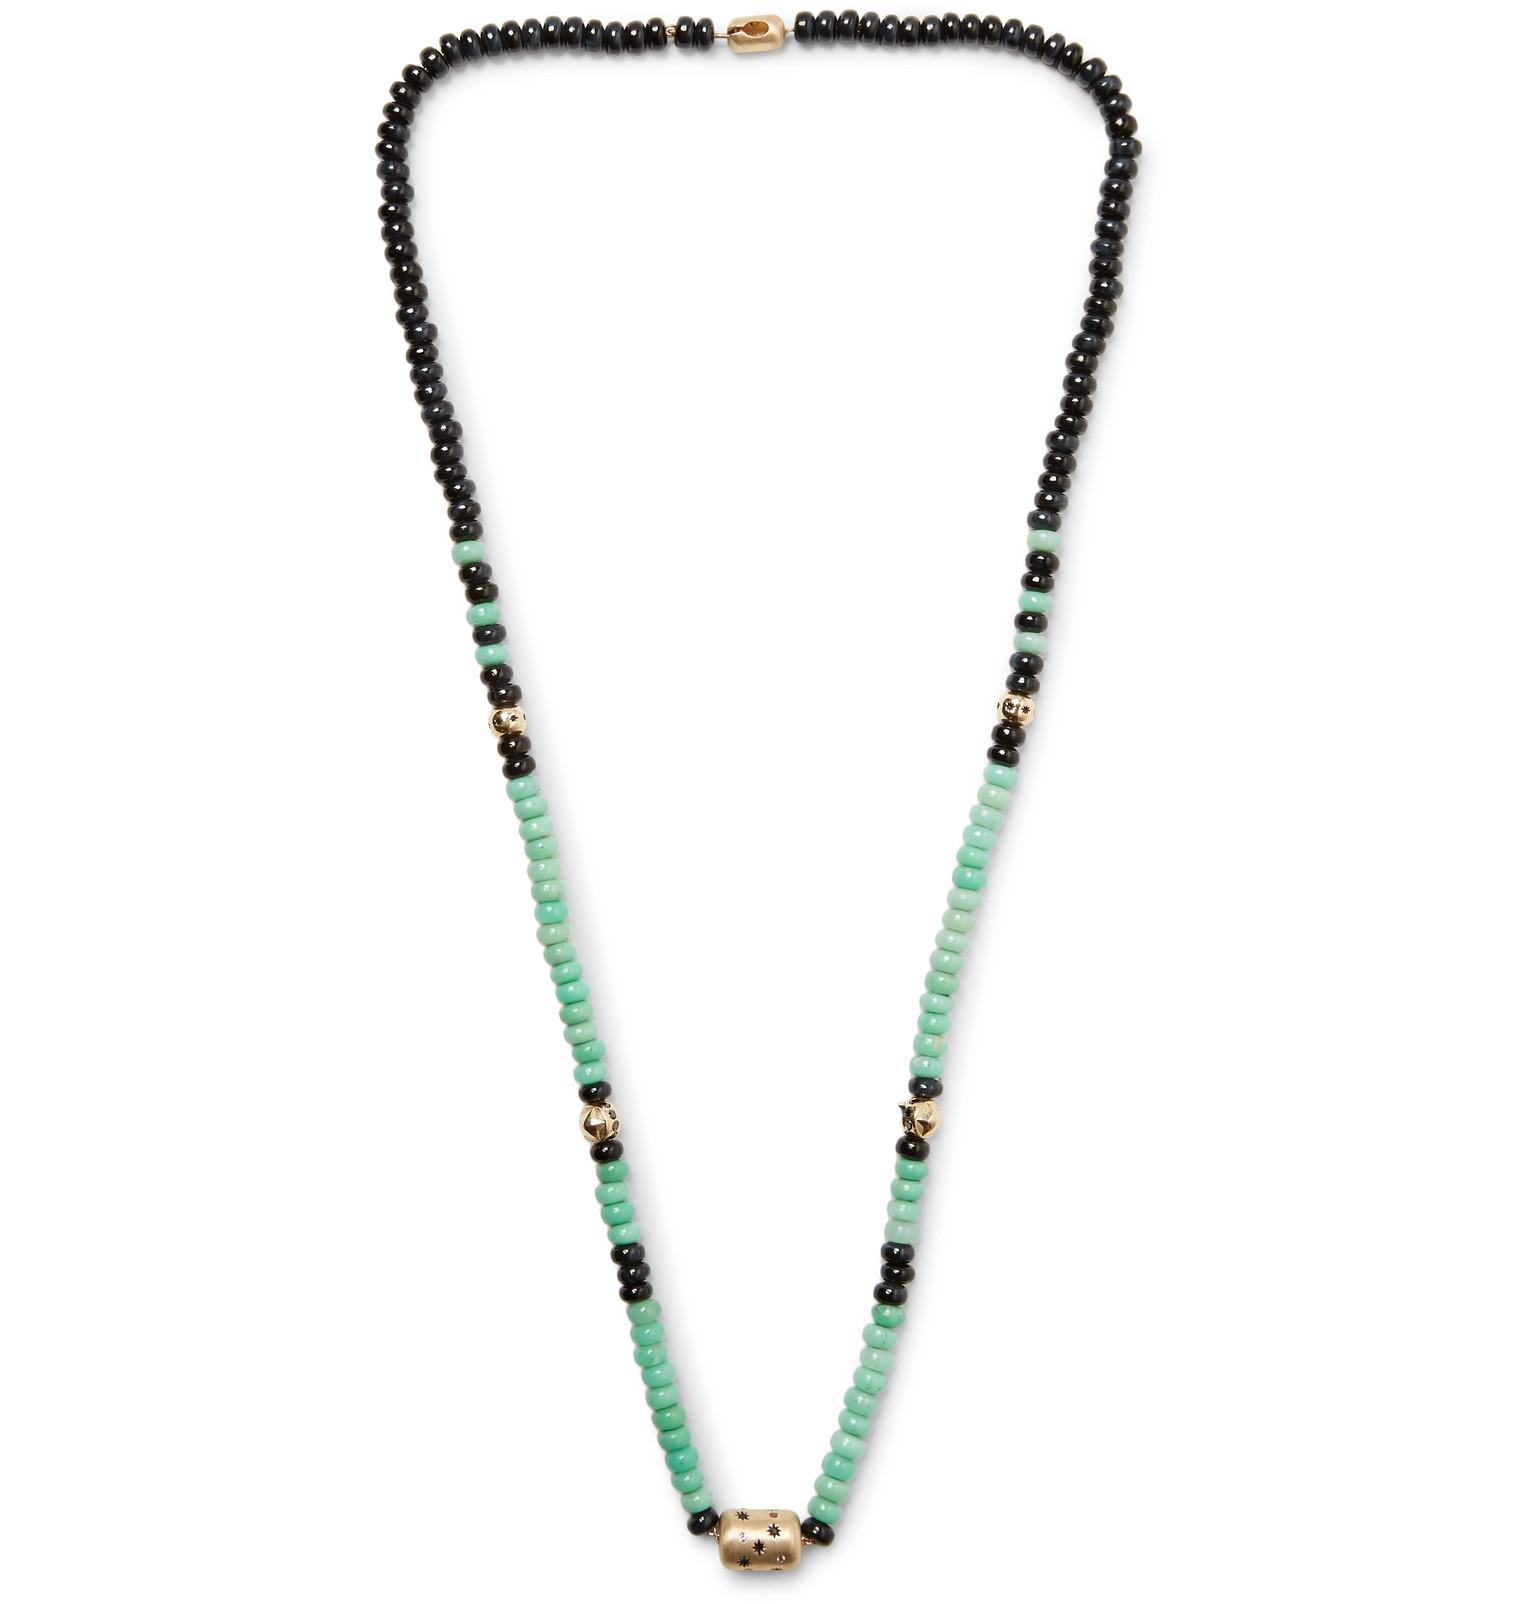 products chrysoprase gold with spring clasp on necklace chain filled